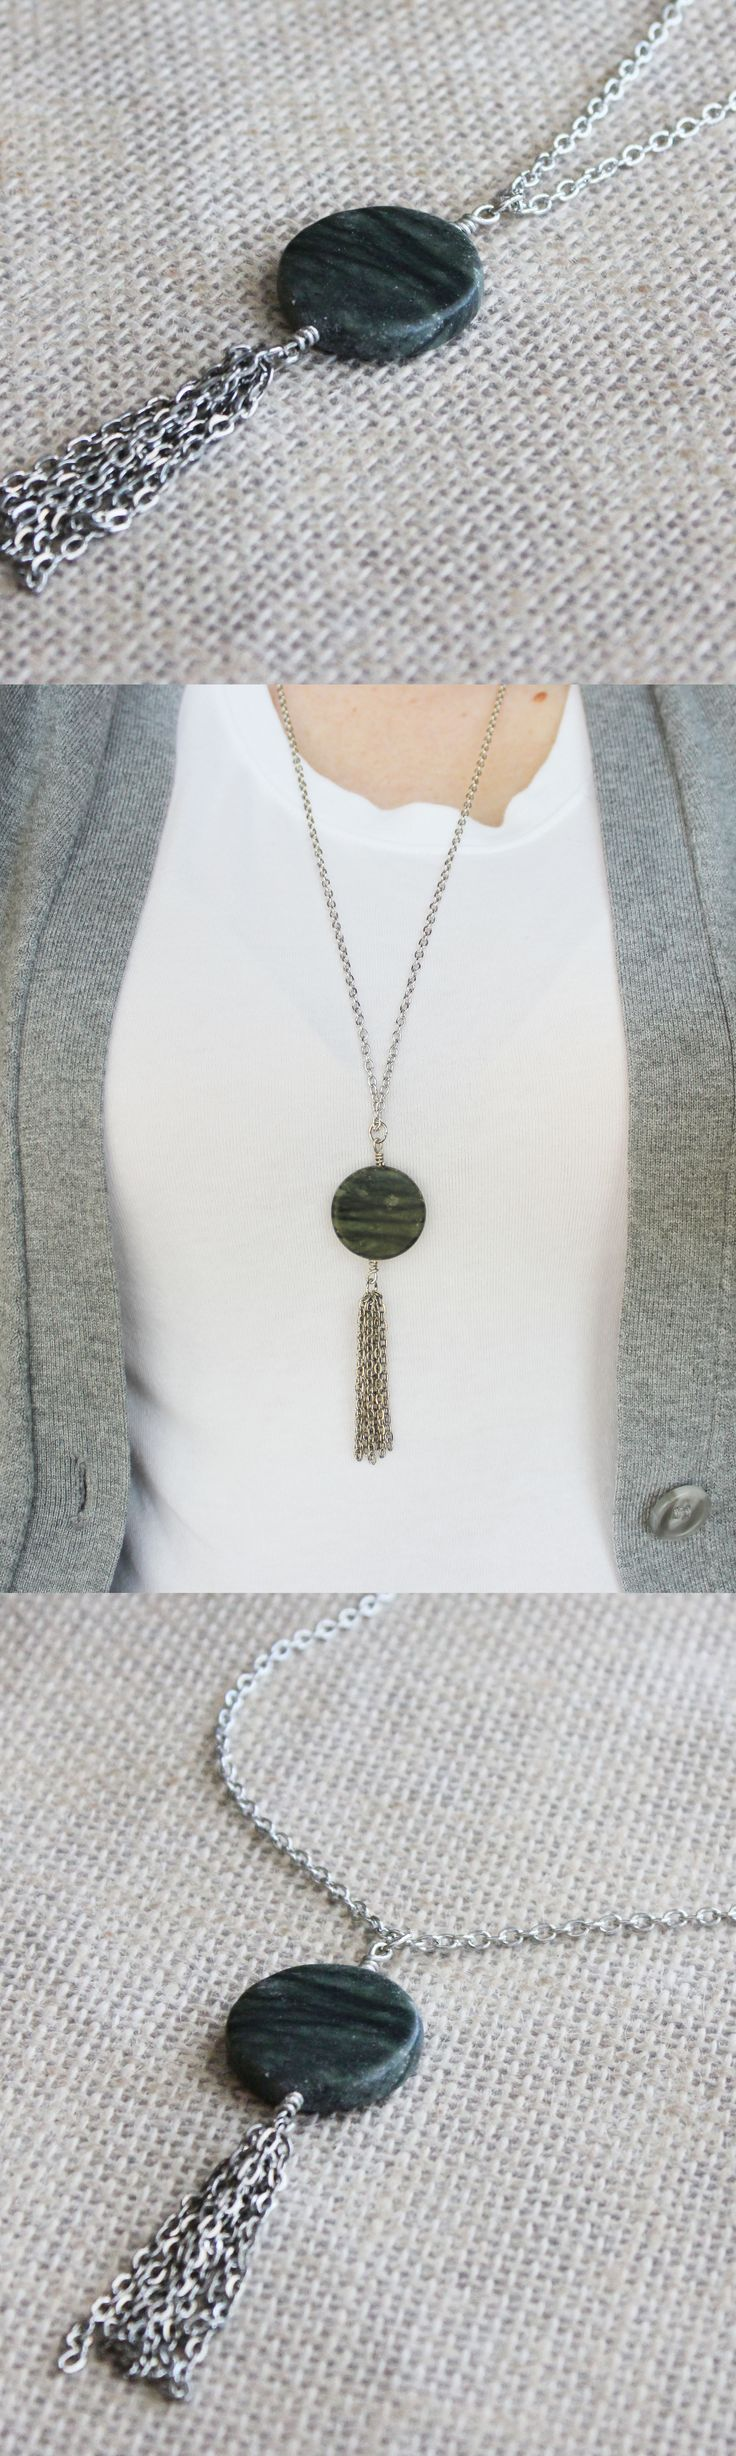 Stone & Tassel Necklace | This stone & tassel pendant necklace makes a great statement.